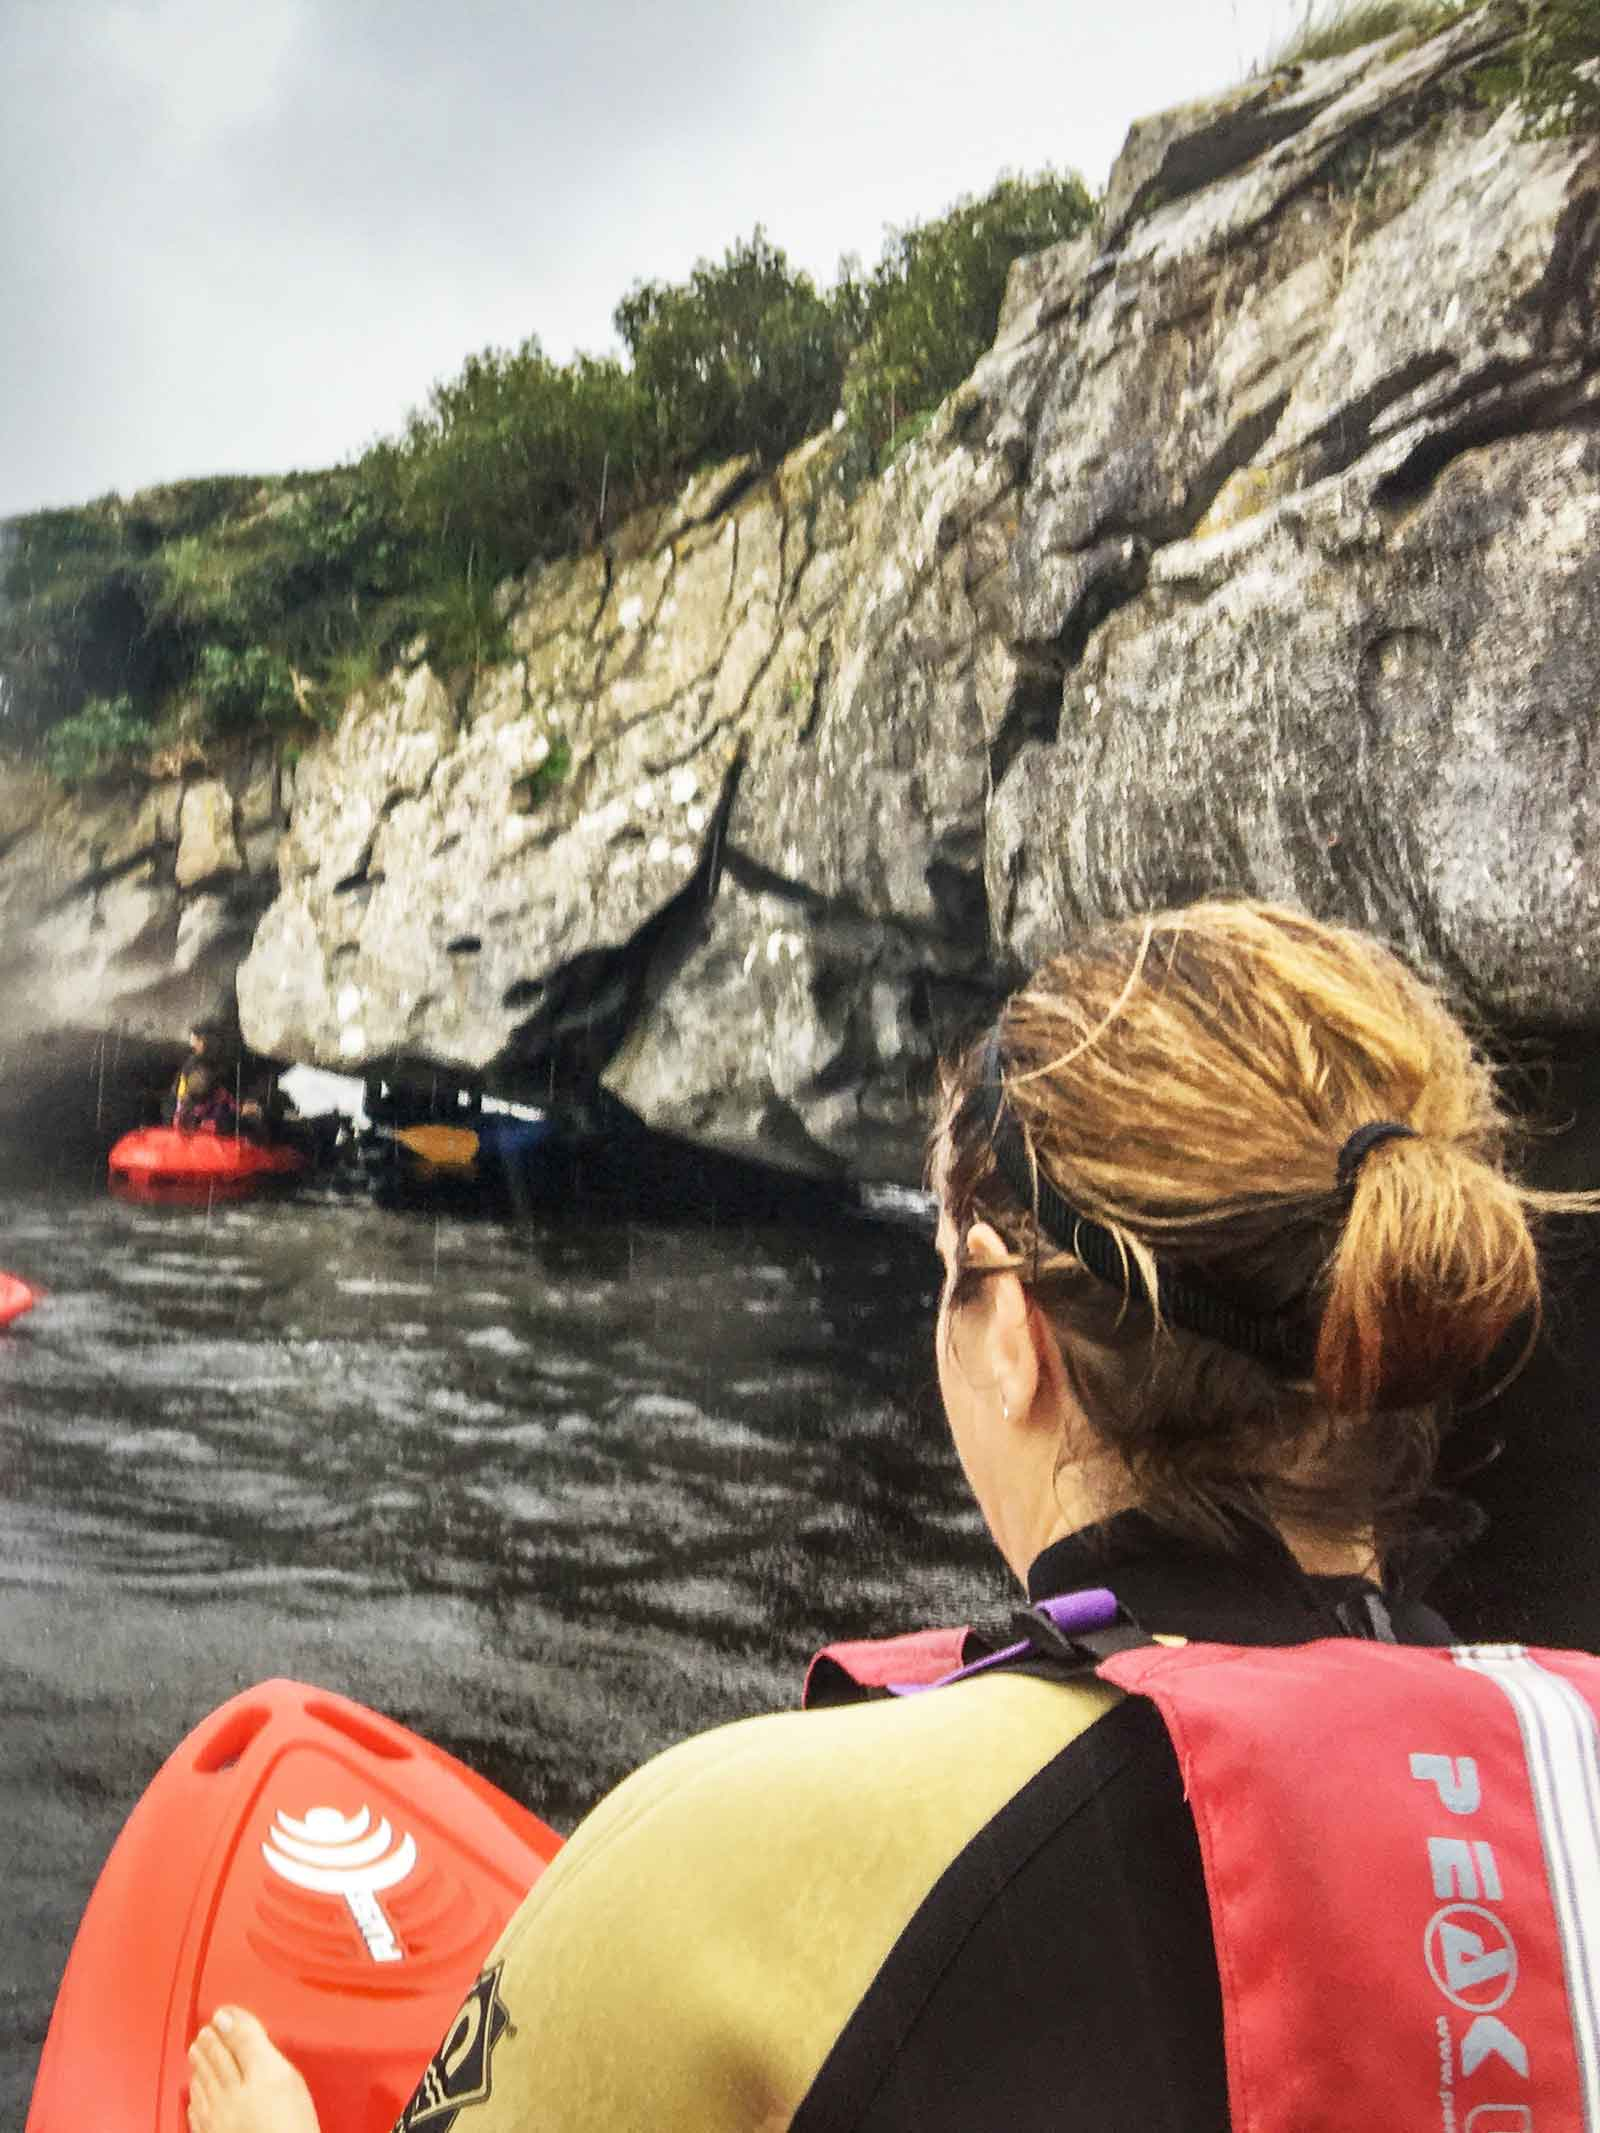 kayaking by the islands in Lough Leane County Kerry